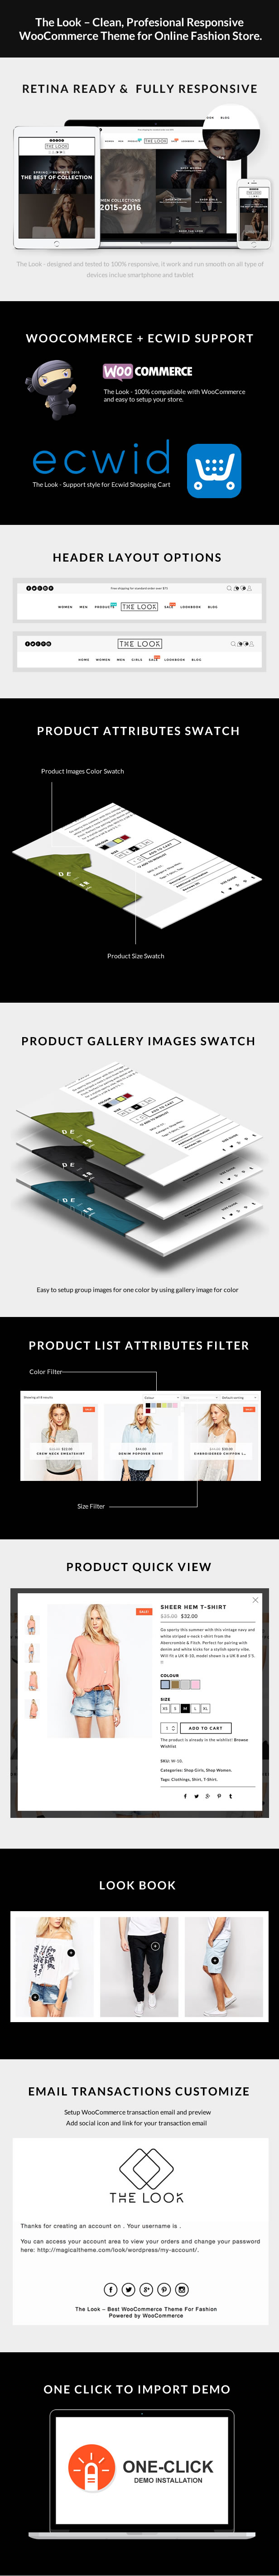 The Look - Clean, Responsive WooCommerce Theme - 1